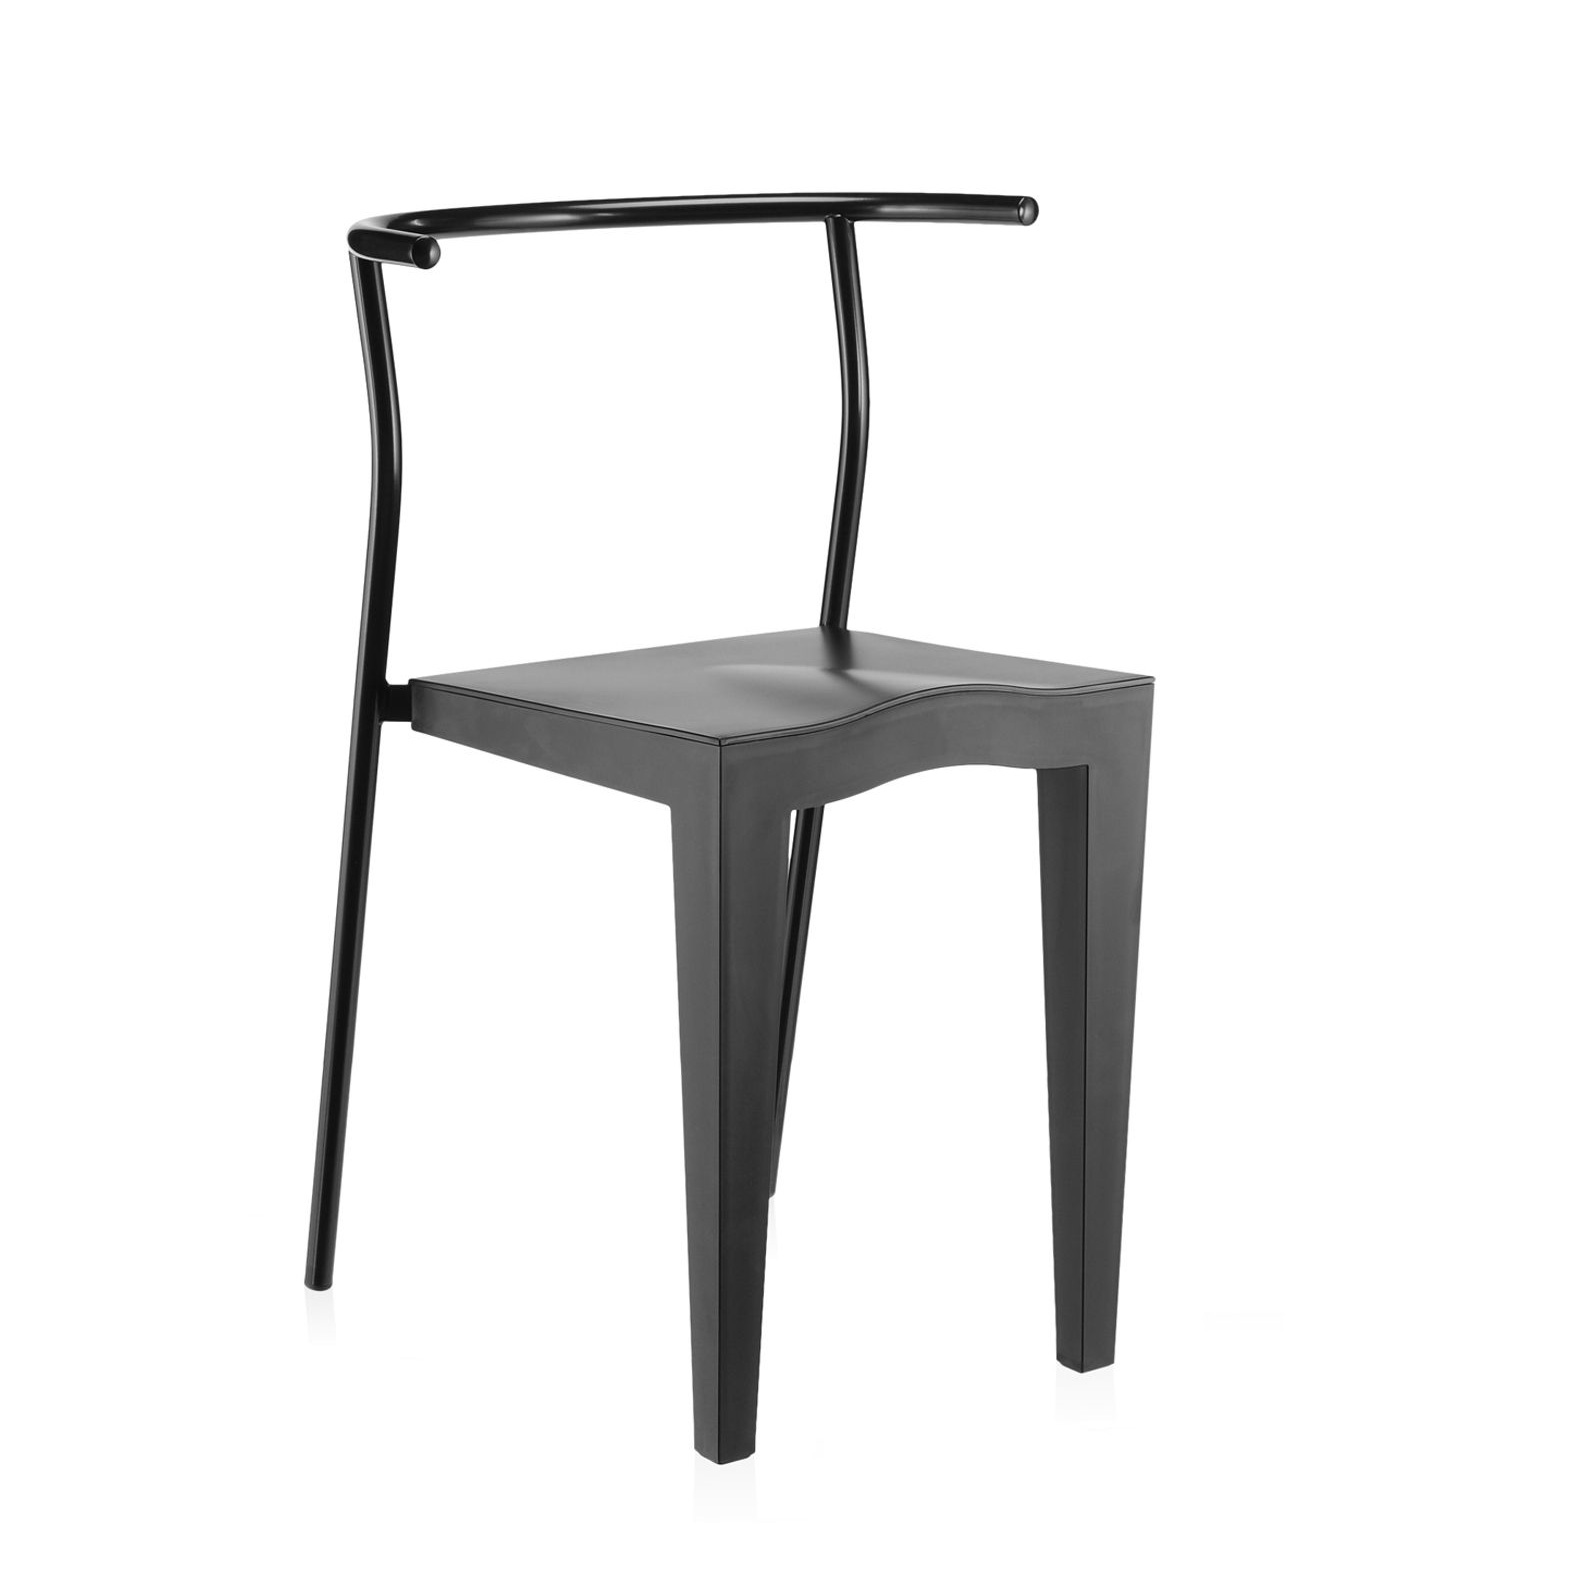 Kartell Dr Glob chair designed by Philippe Starck